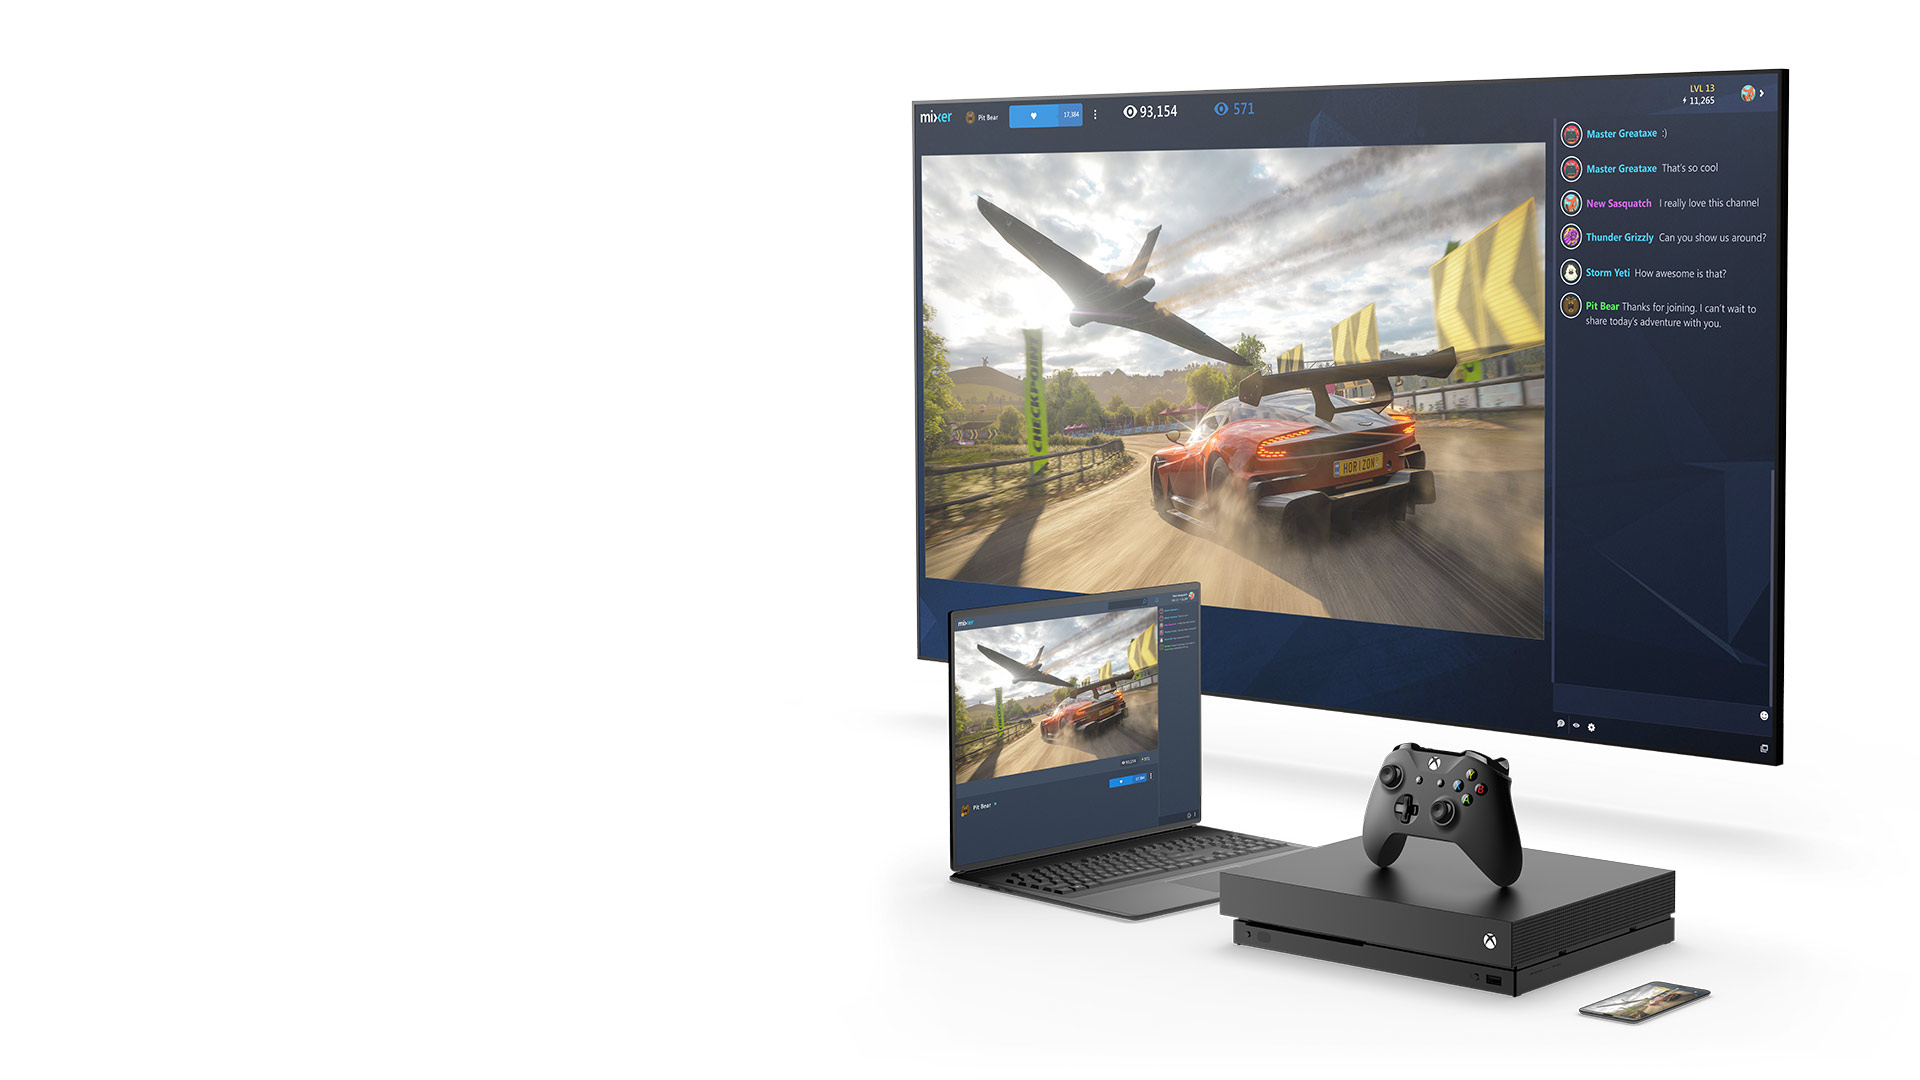 Mobile phone, Xbox One X console, laptop, and television displaying a Mixer stream for Forza Horizon 4